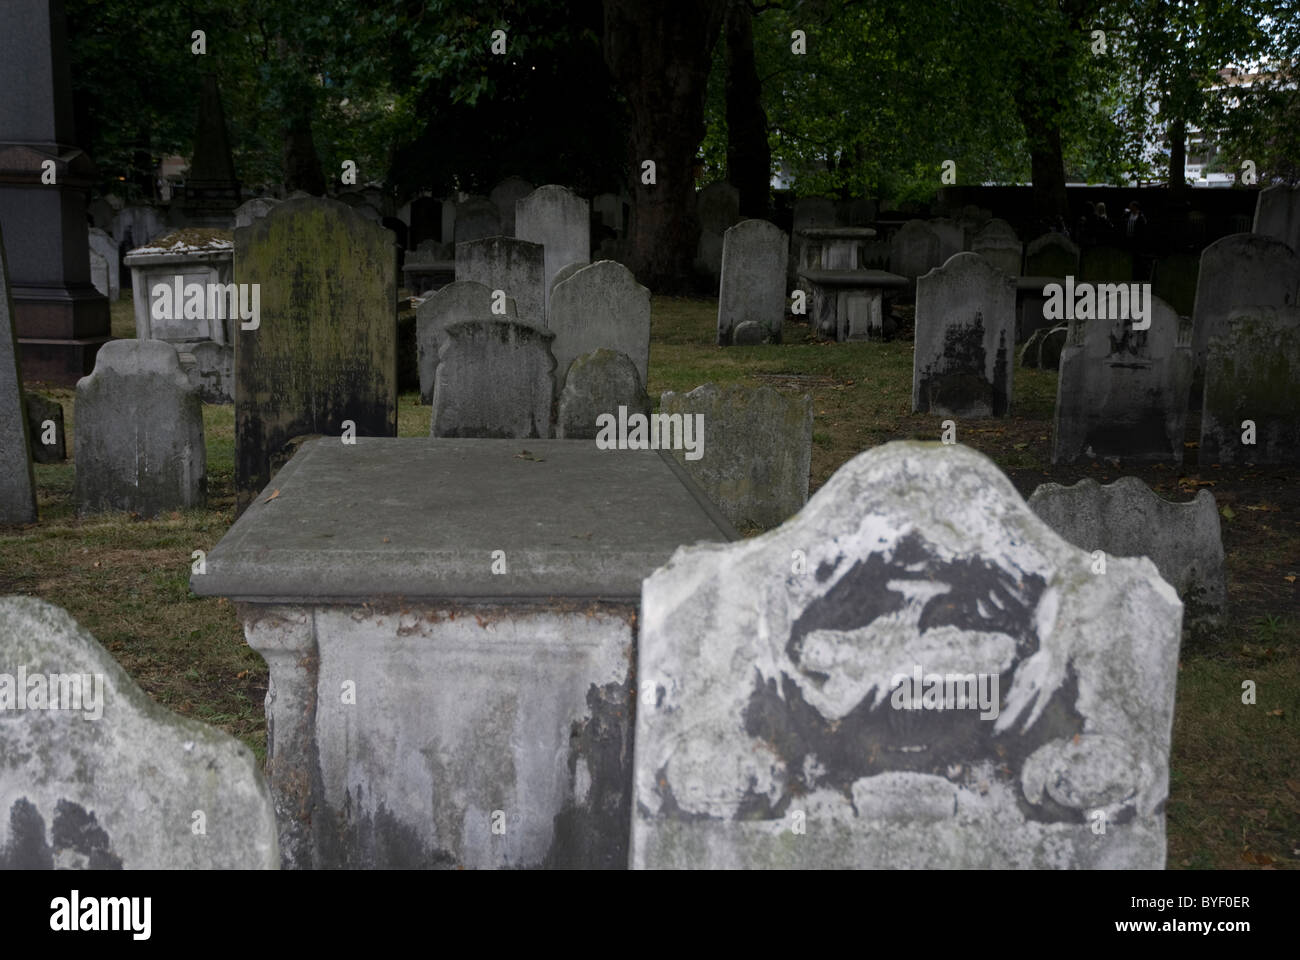 Graves in Bunhill Fields Cemetery London E1 - Stock Image